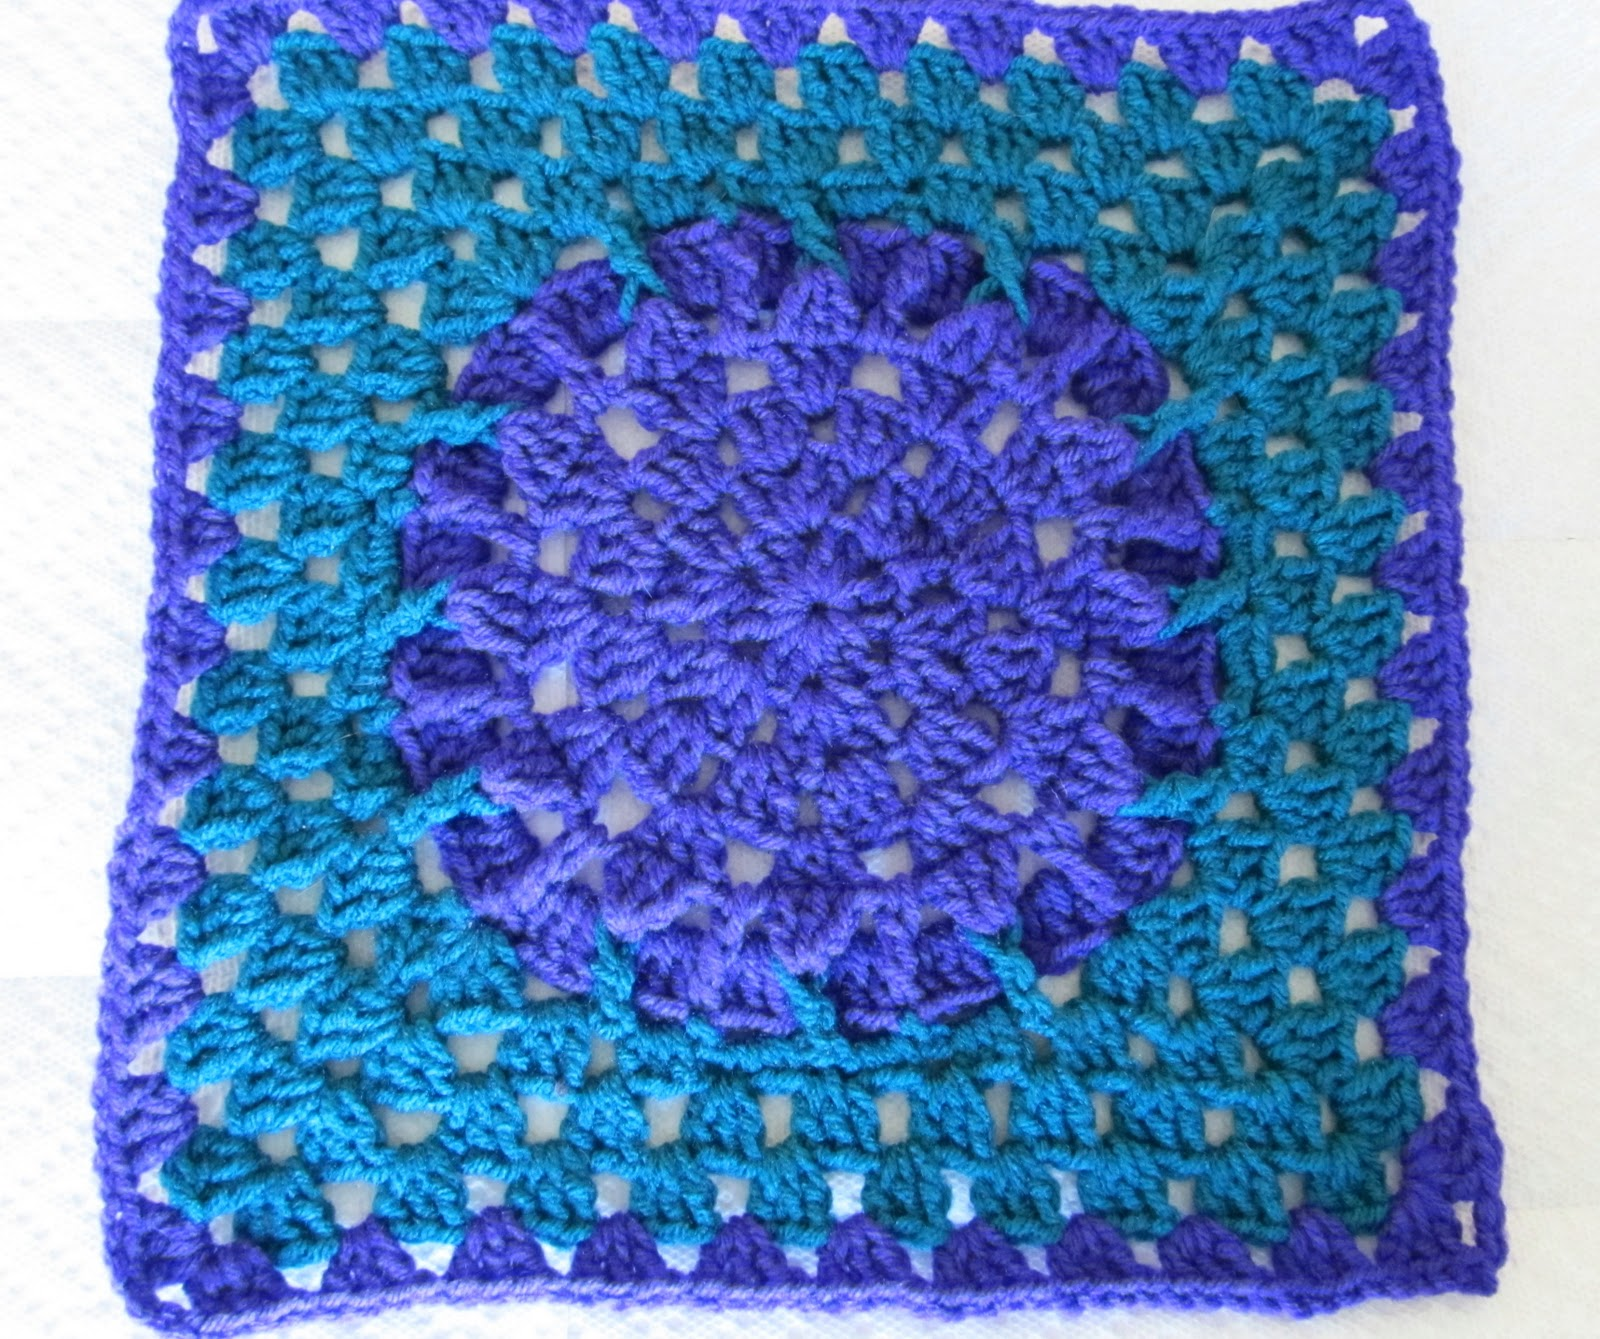 Crochet Patterns Squares : ... and Knit: SmoothFoxs Friends Square 12x12 - Free crochet pattern